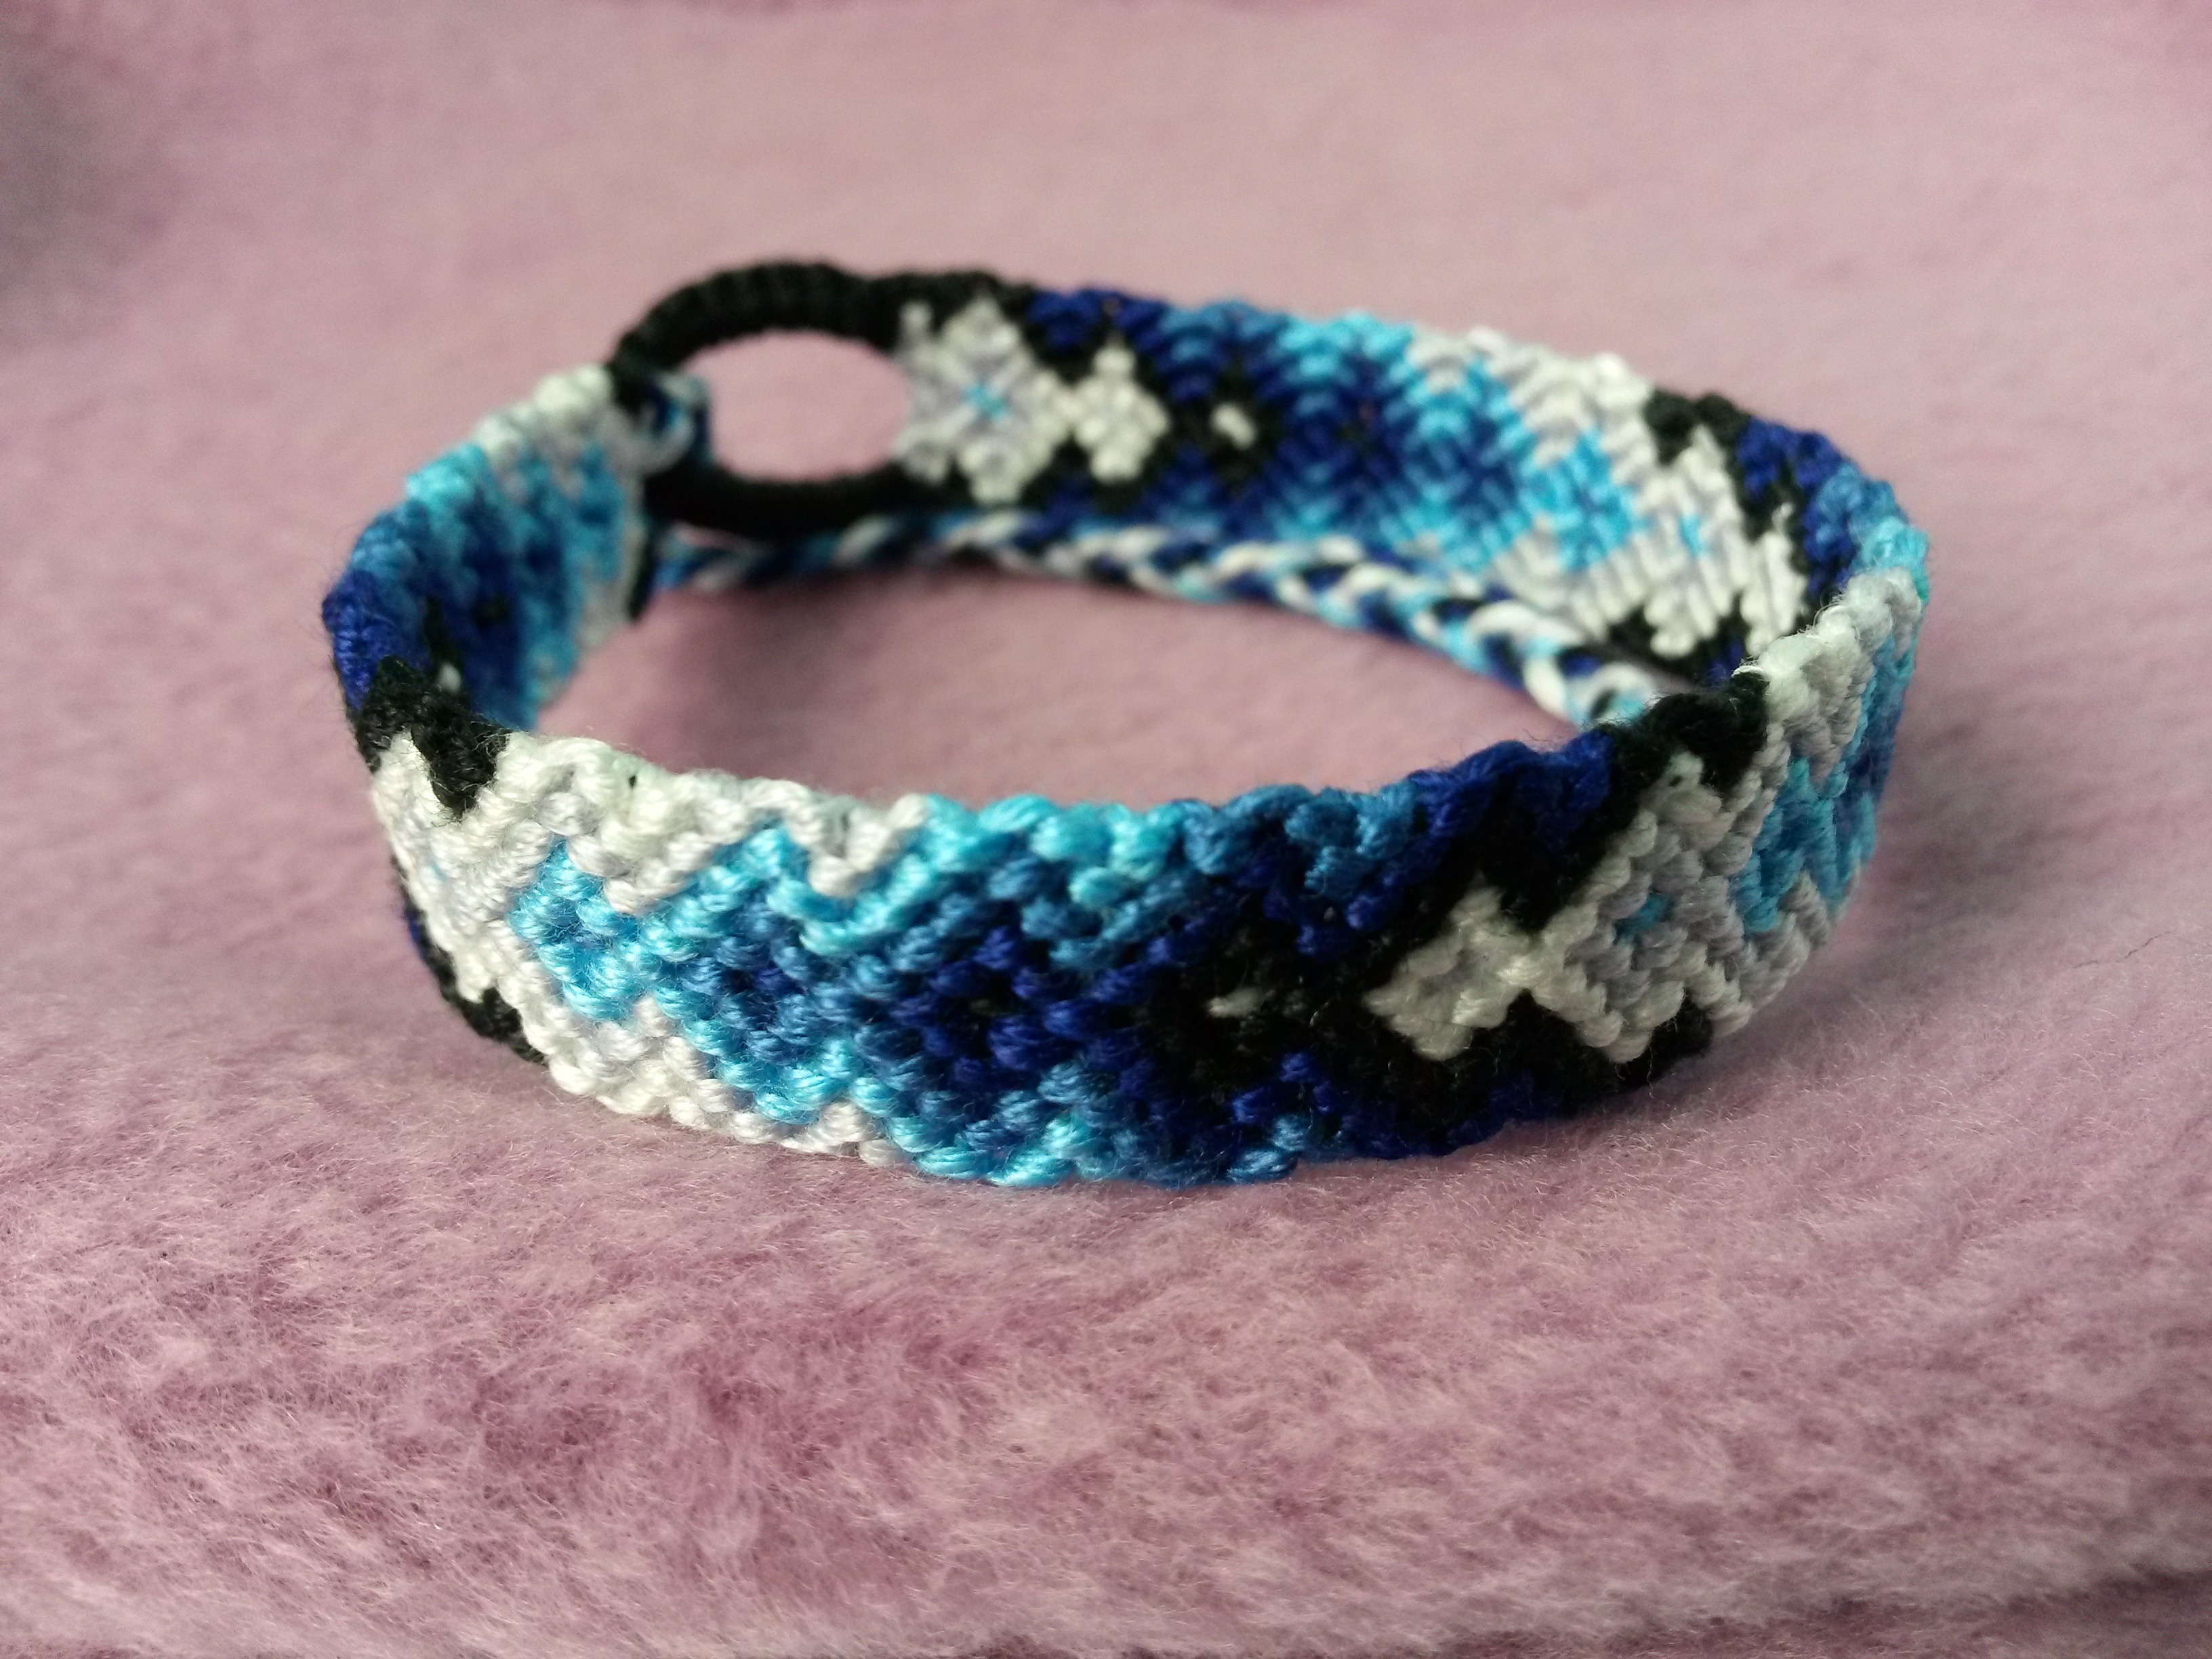 Friendship Bracelet Patterns - Blue Gradient Arrow Pattern